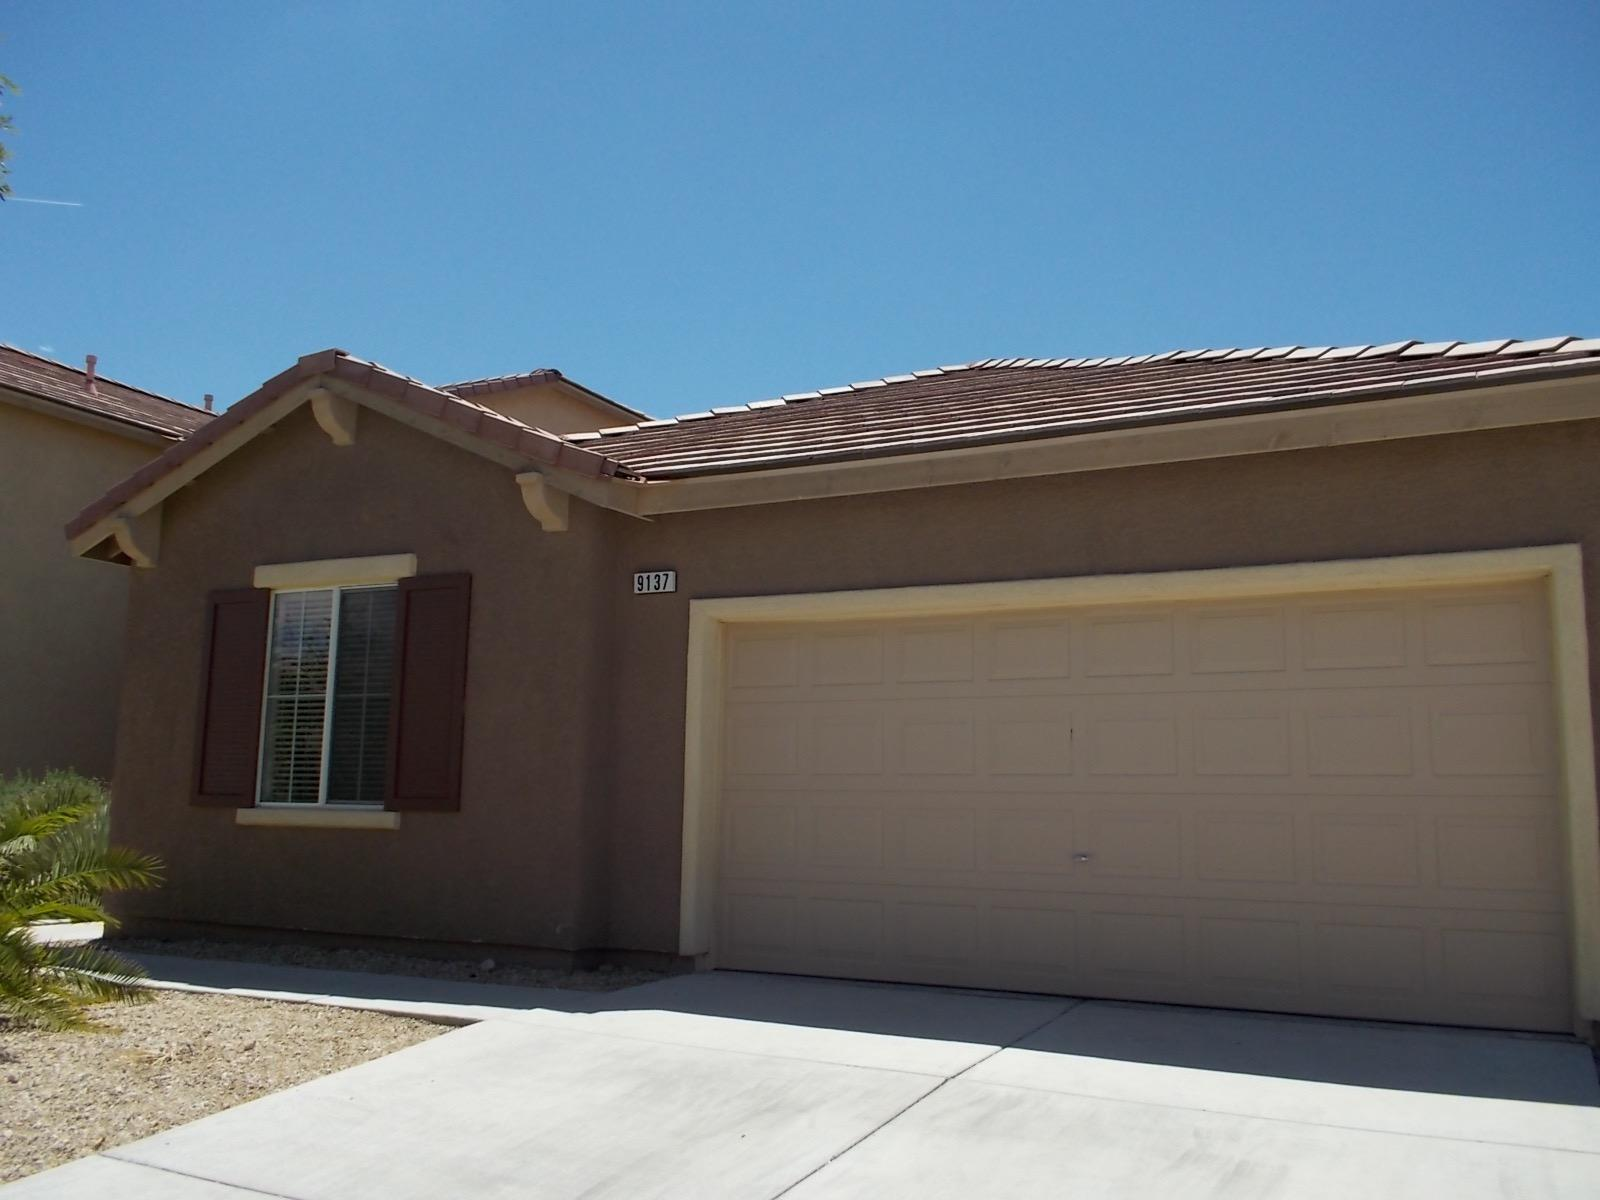 9137 weeping hollow ave for rent las vegas nv trulia 9137 weeping hollow ave rubansaba